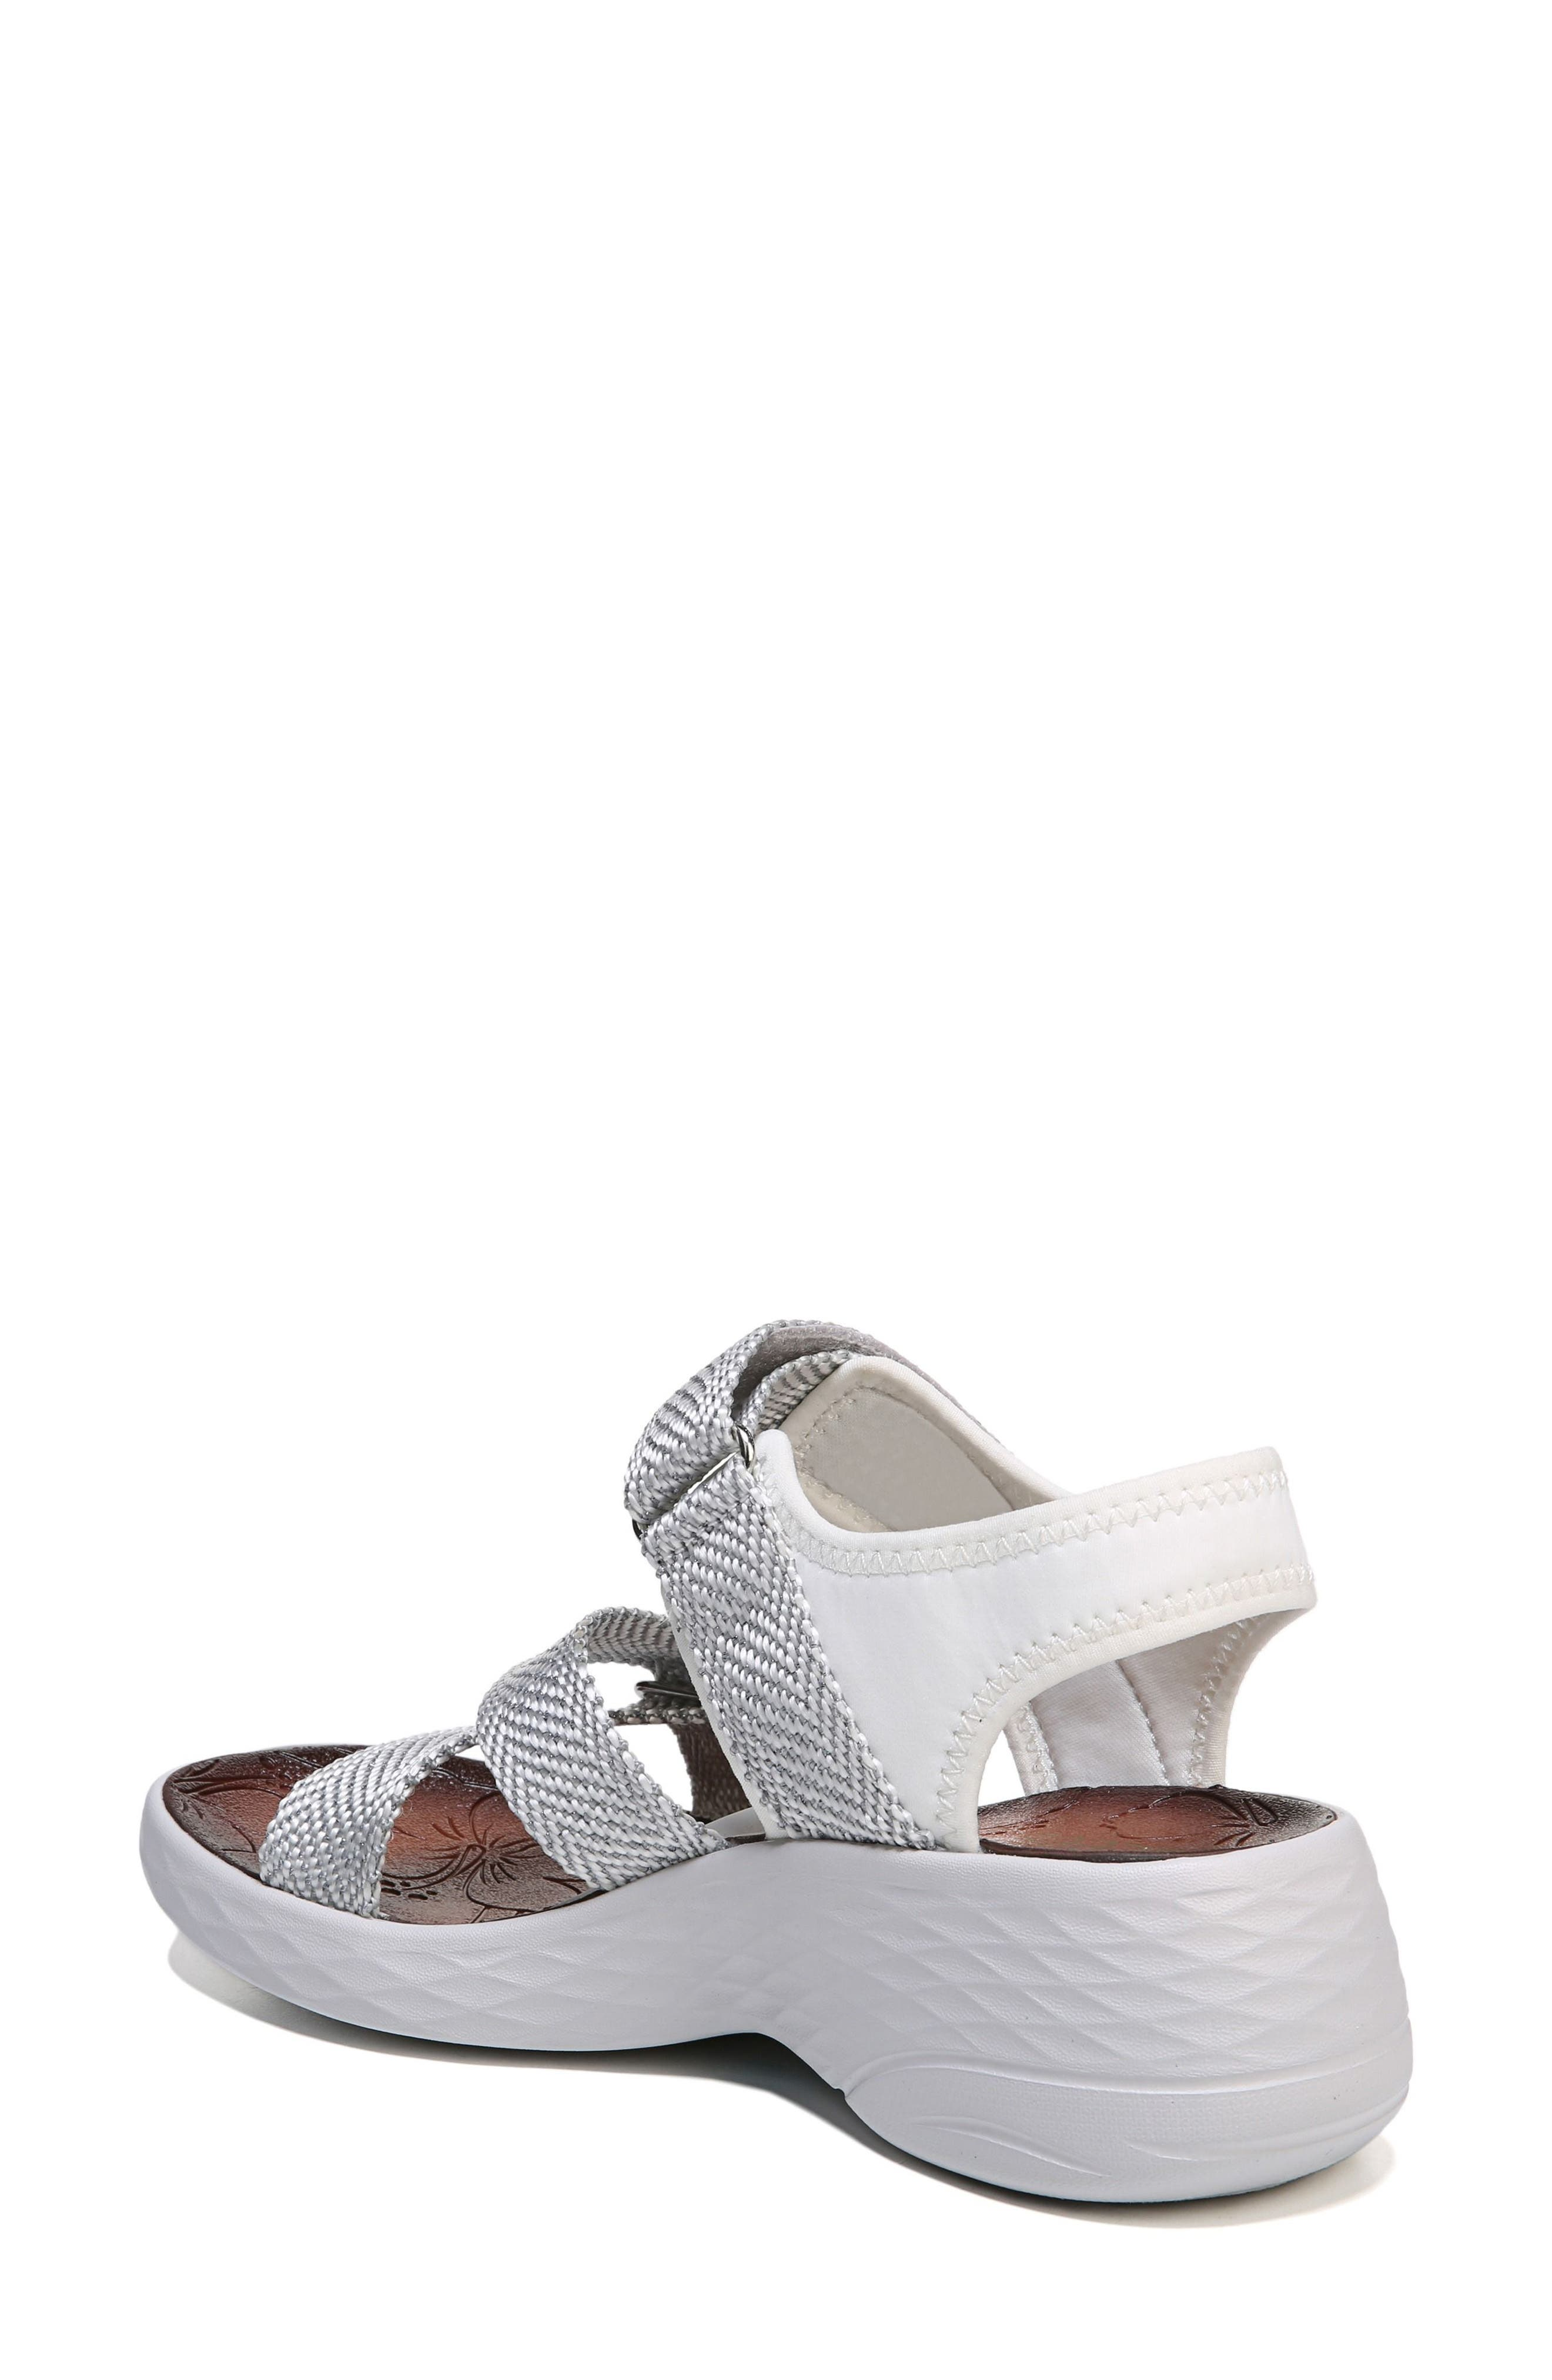 Jive Sandal,                             Alternate thumbnail 2, color,                             White Fabric